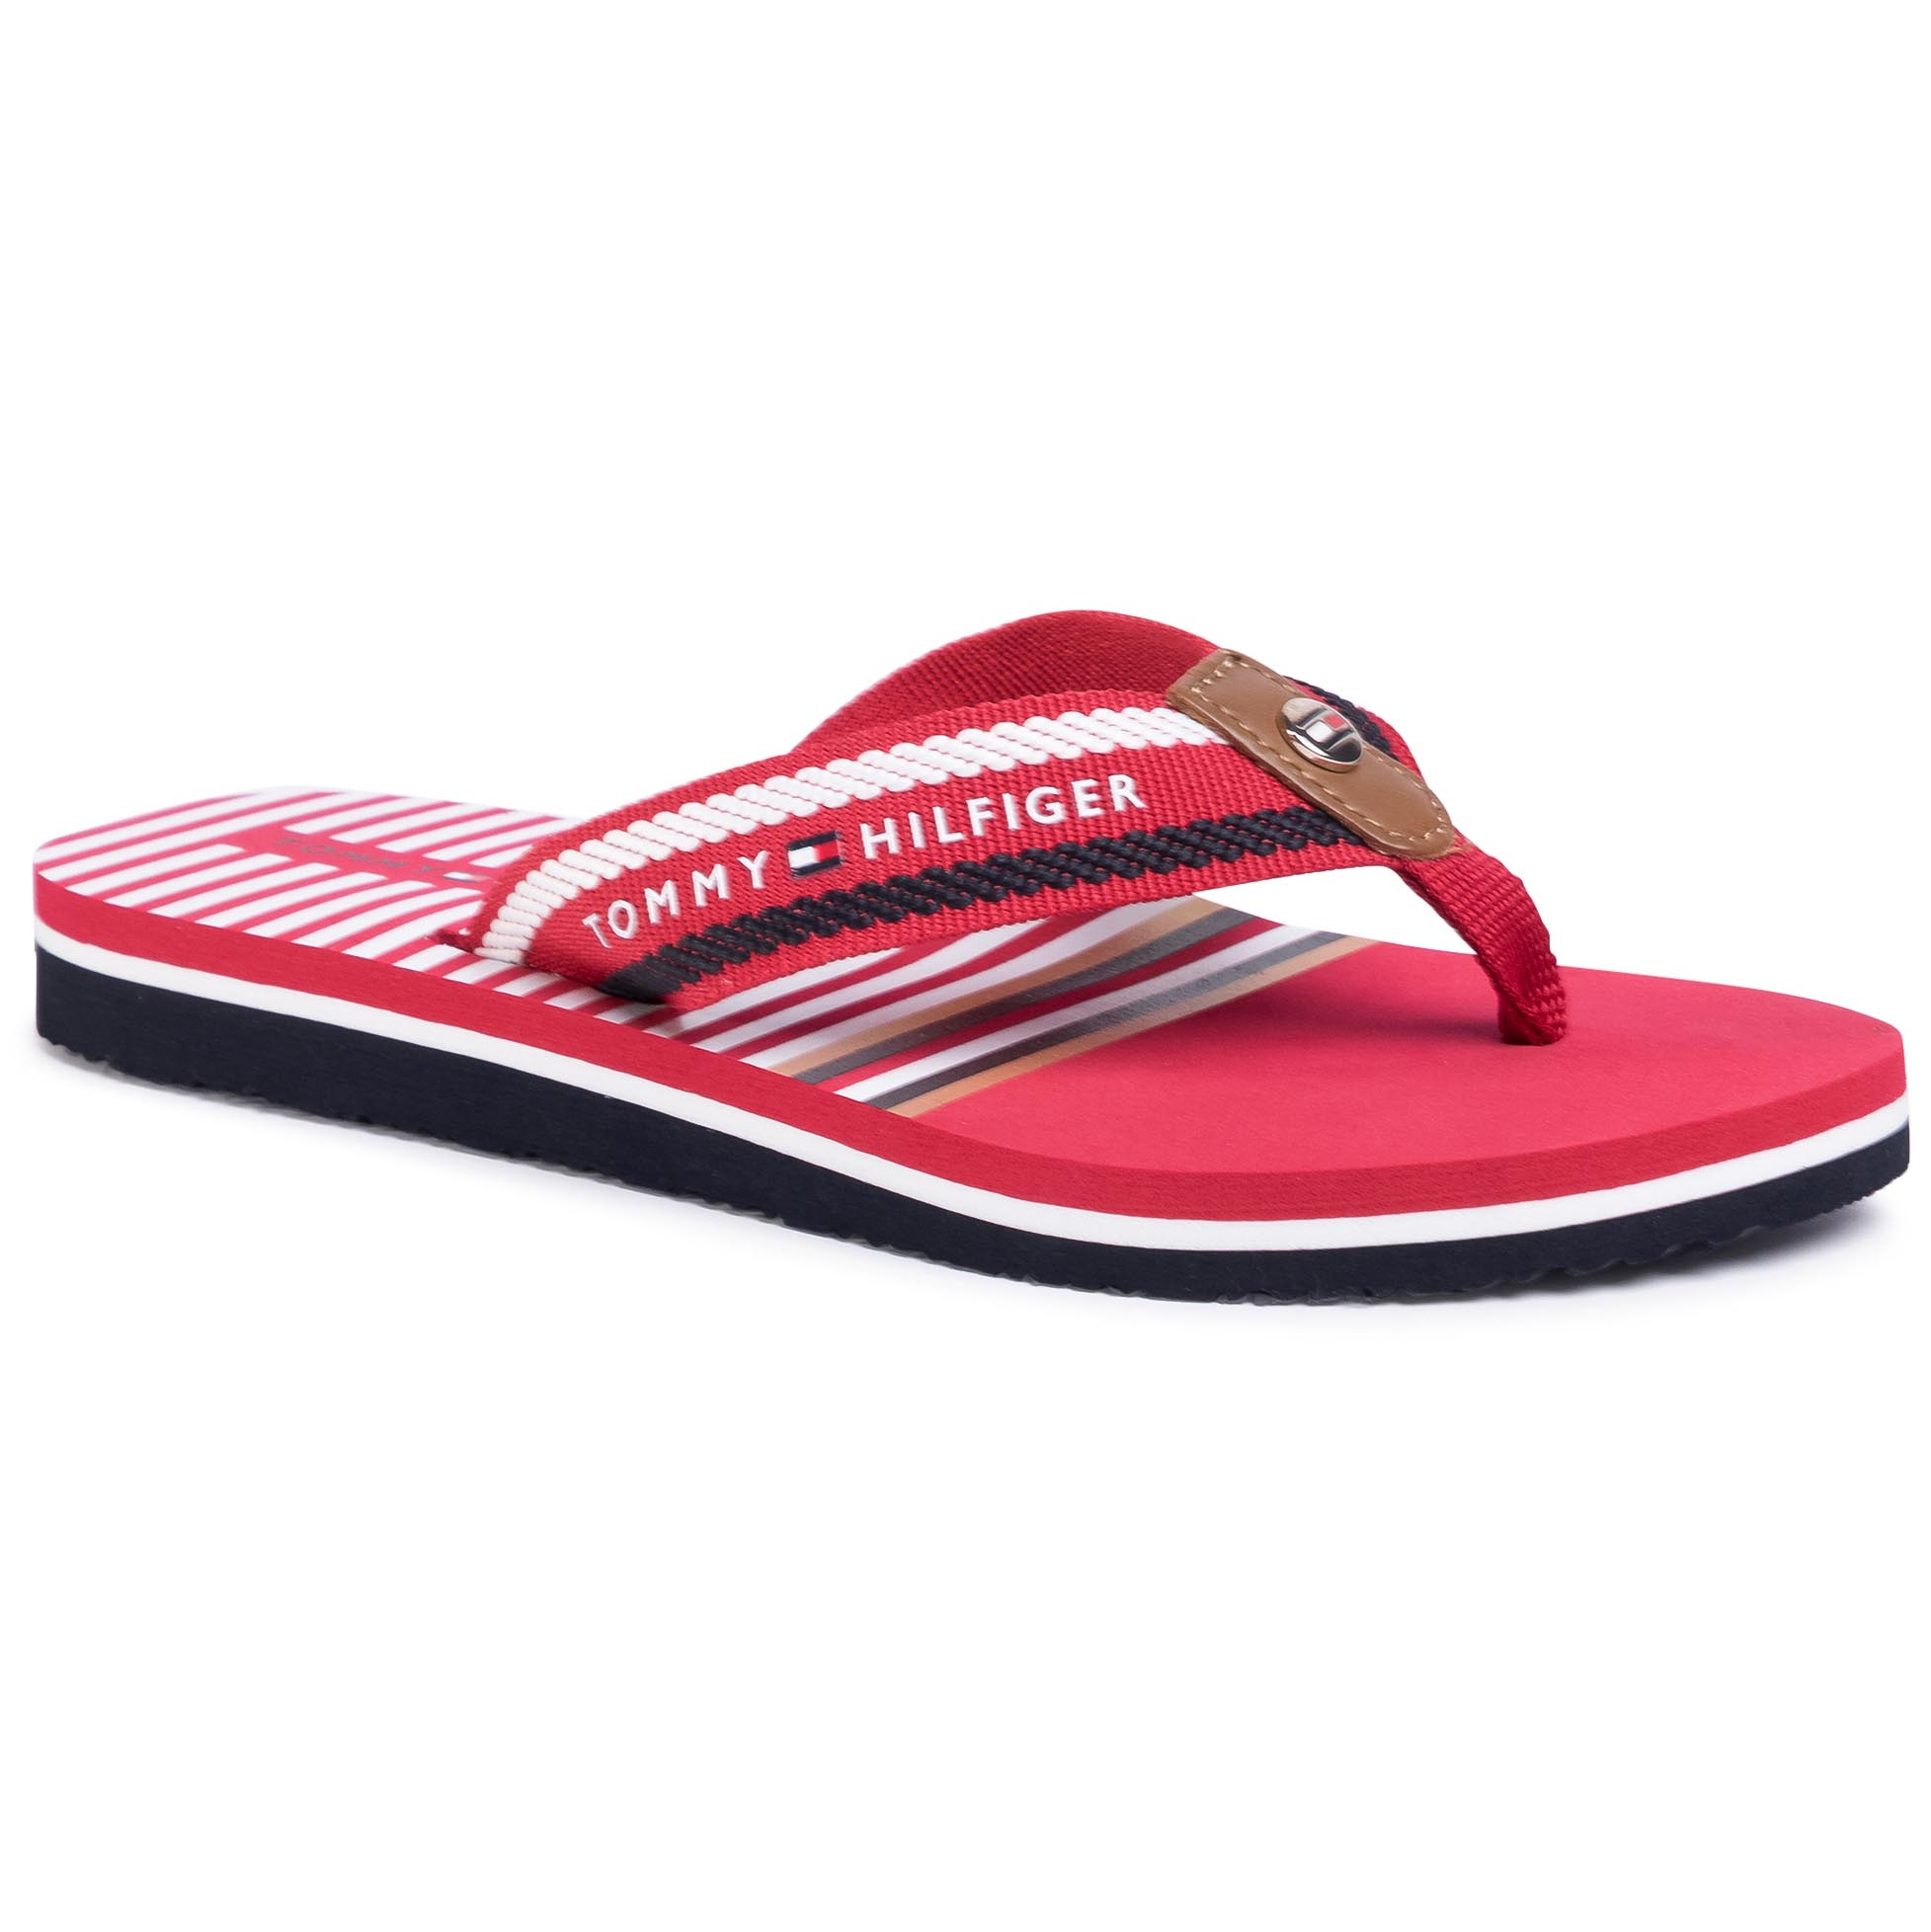 Chanclas TOMMY HILFIGER - Stripy Flap Beach Sandal FW0FW04799 Primary Red XLG